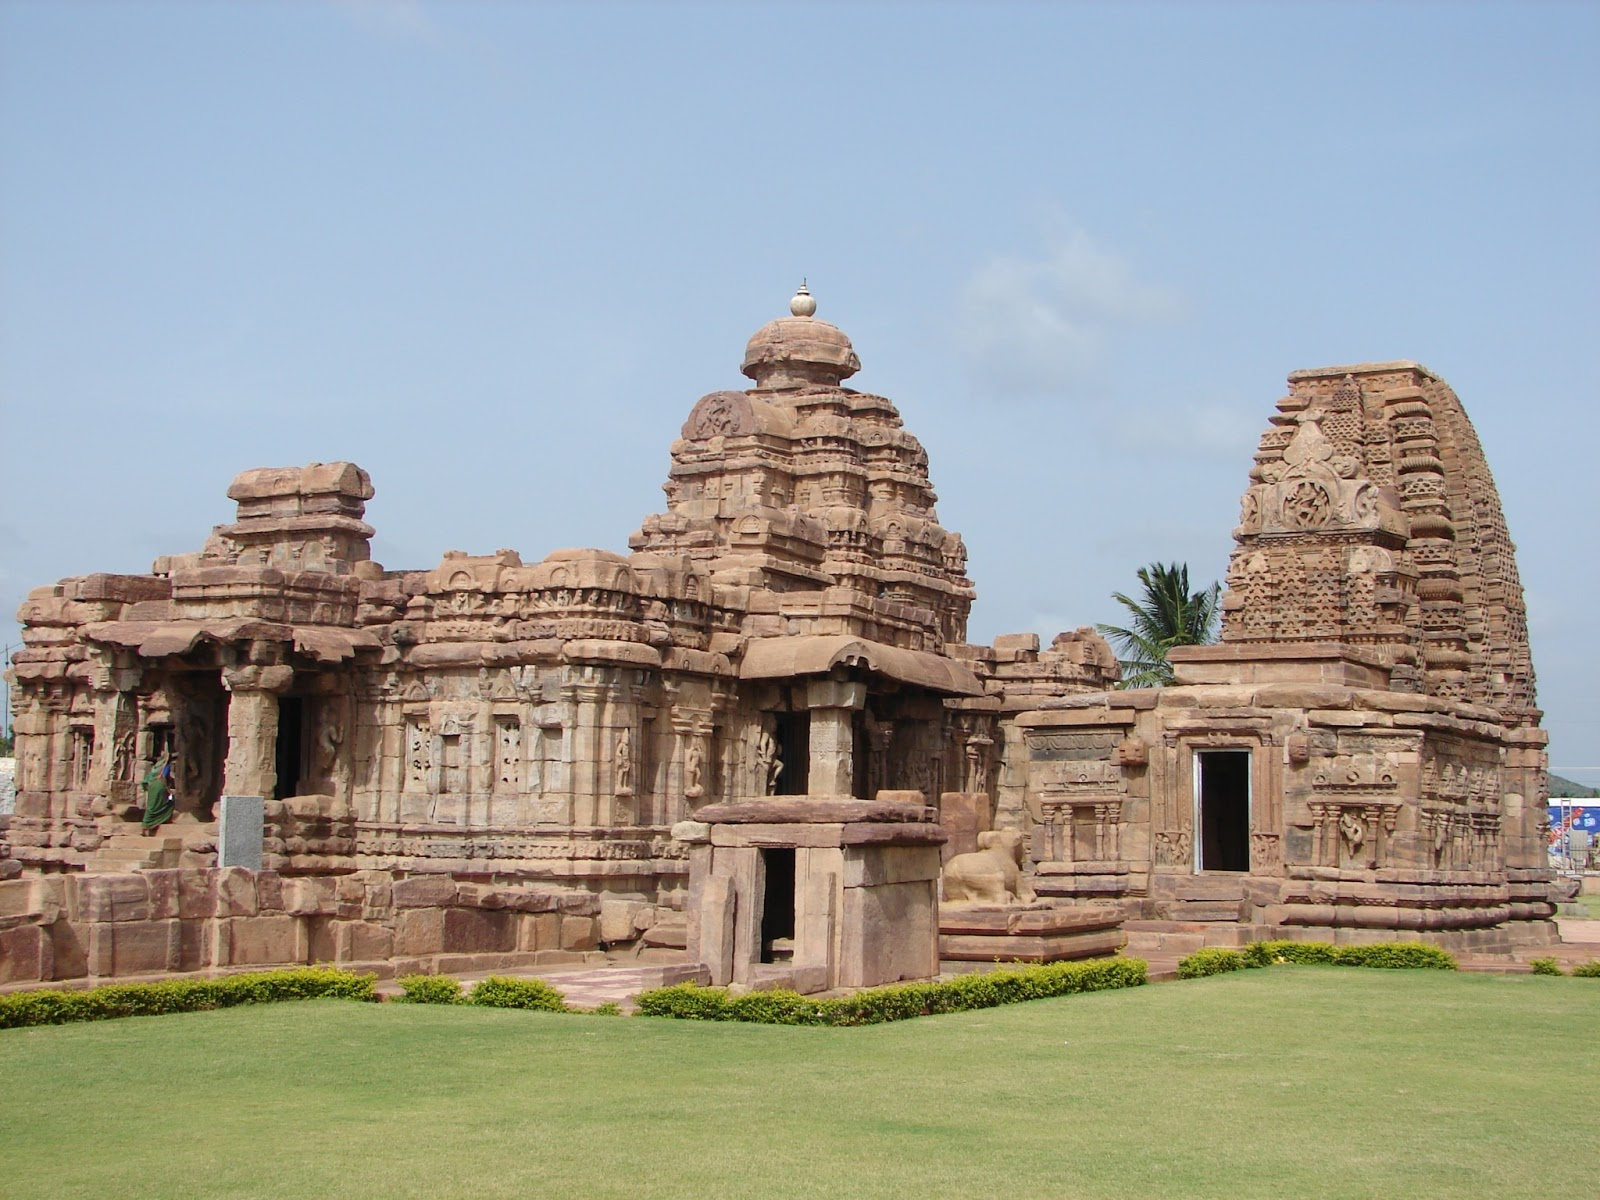 India Out Of This World Pattadakal Chalukya Capital And